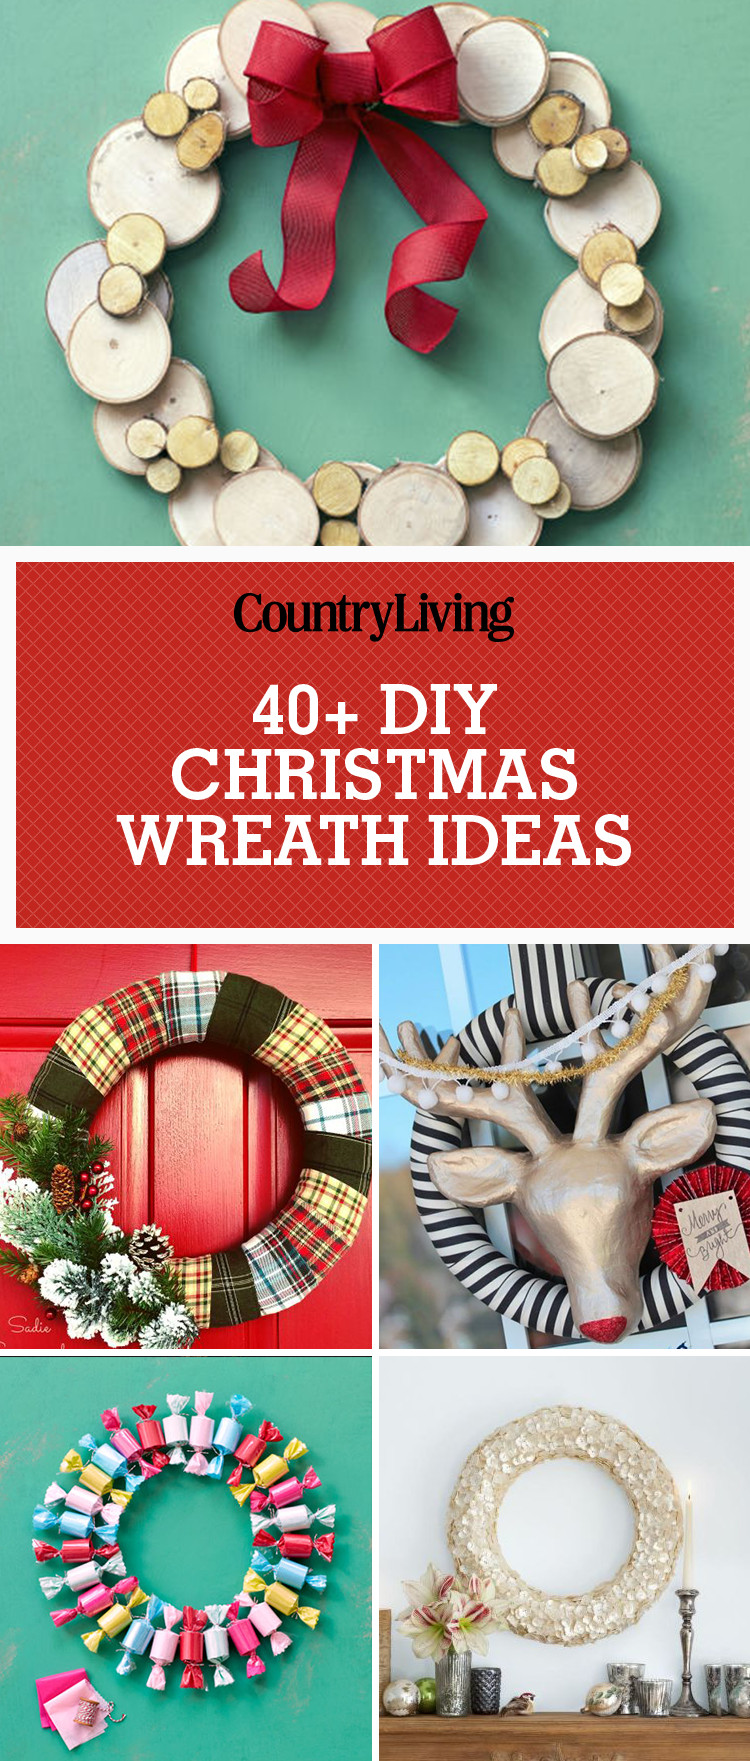 Best ideas about Christmas Decoration DIY Pinterest . Save or Pin 40 DIY Christmas Wreath Ideas How To Make Holiday Now.